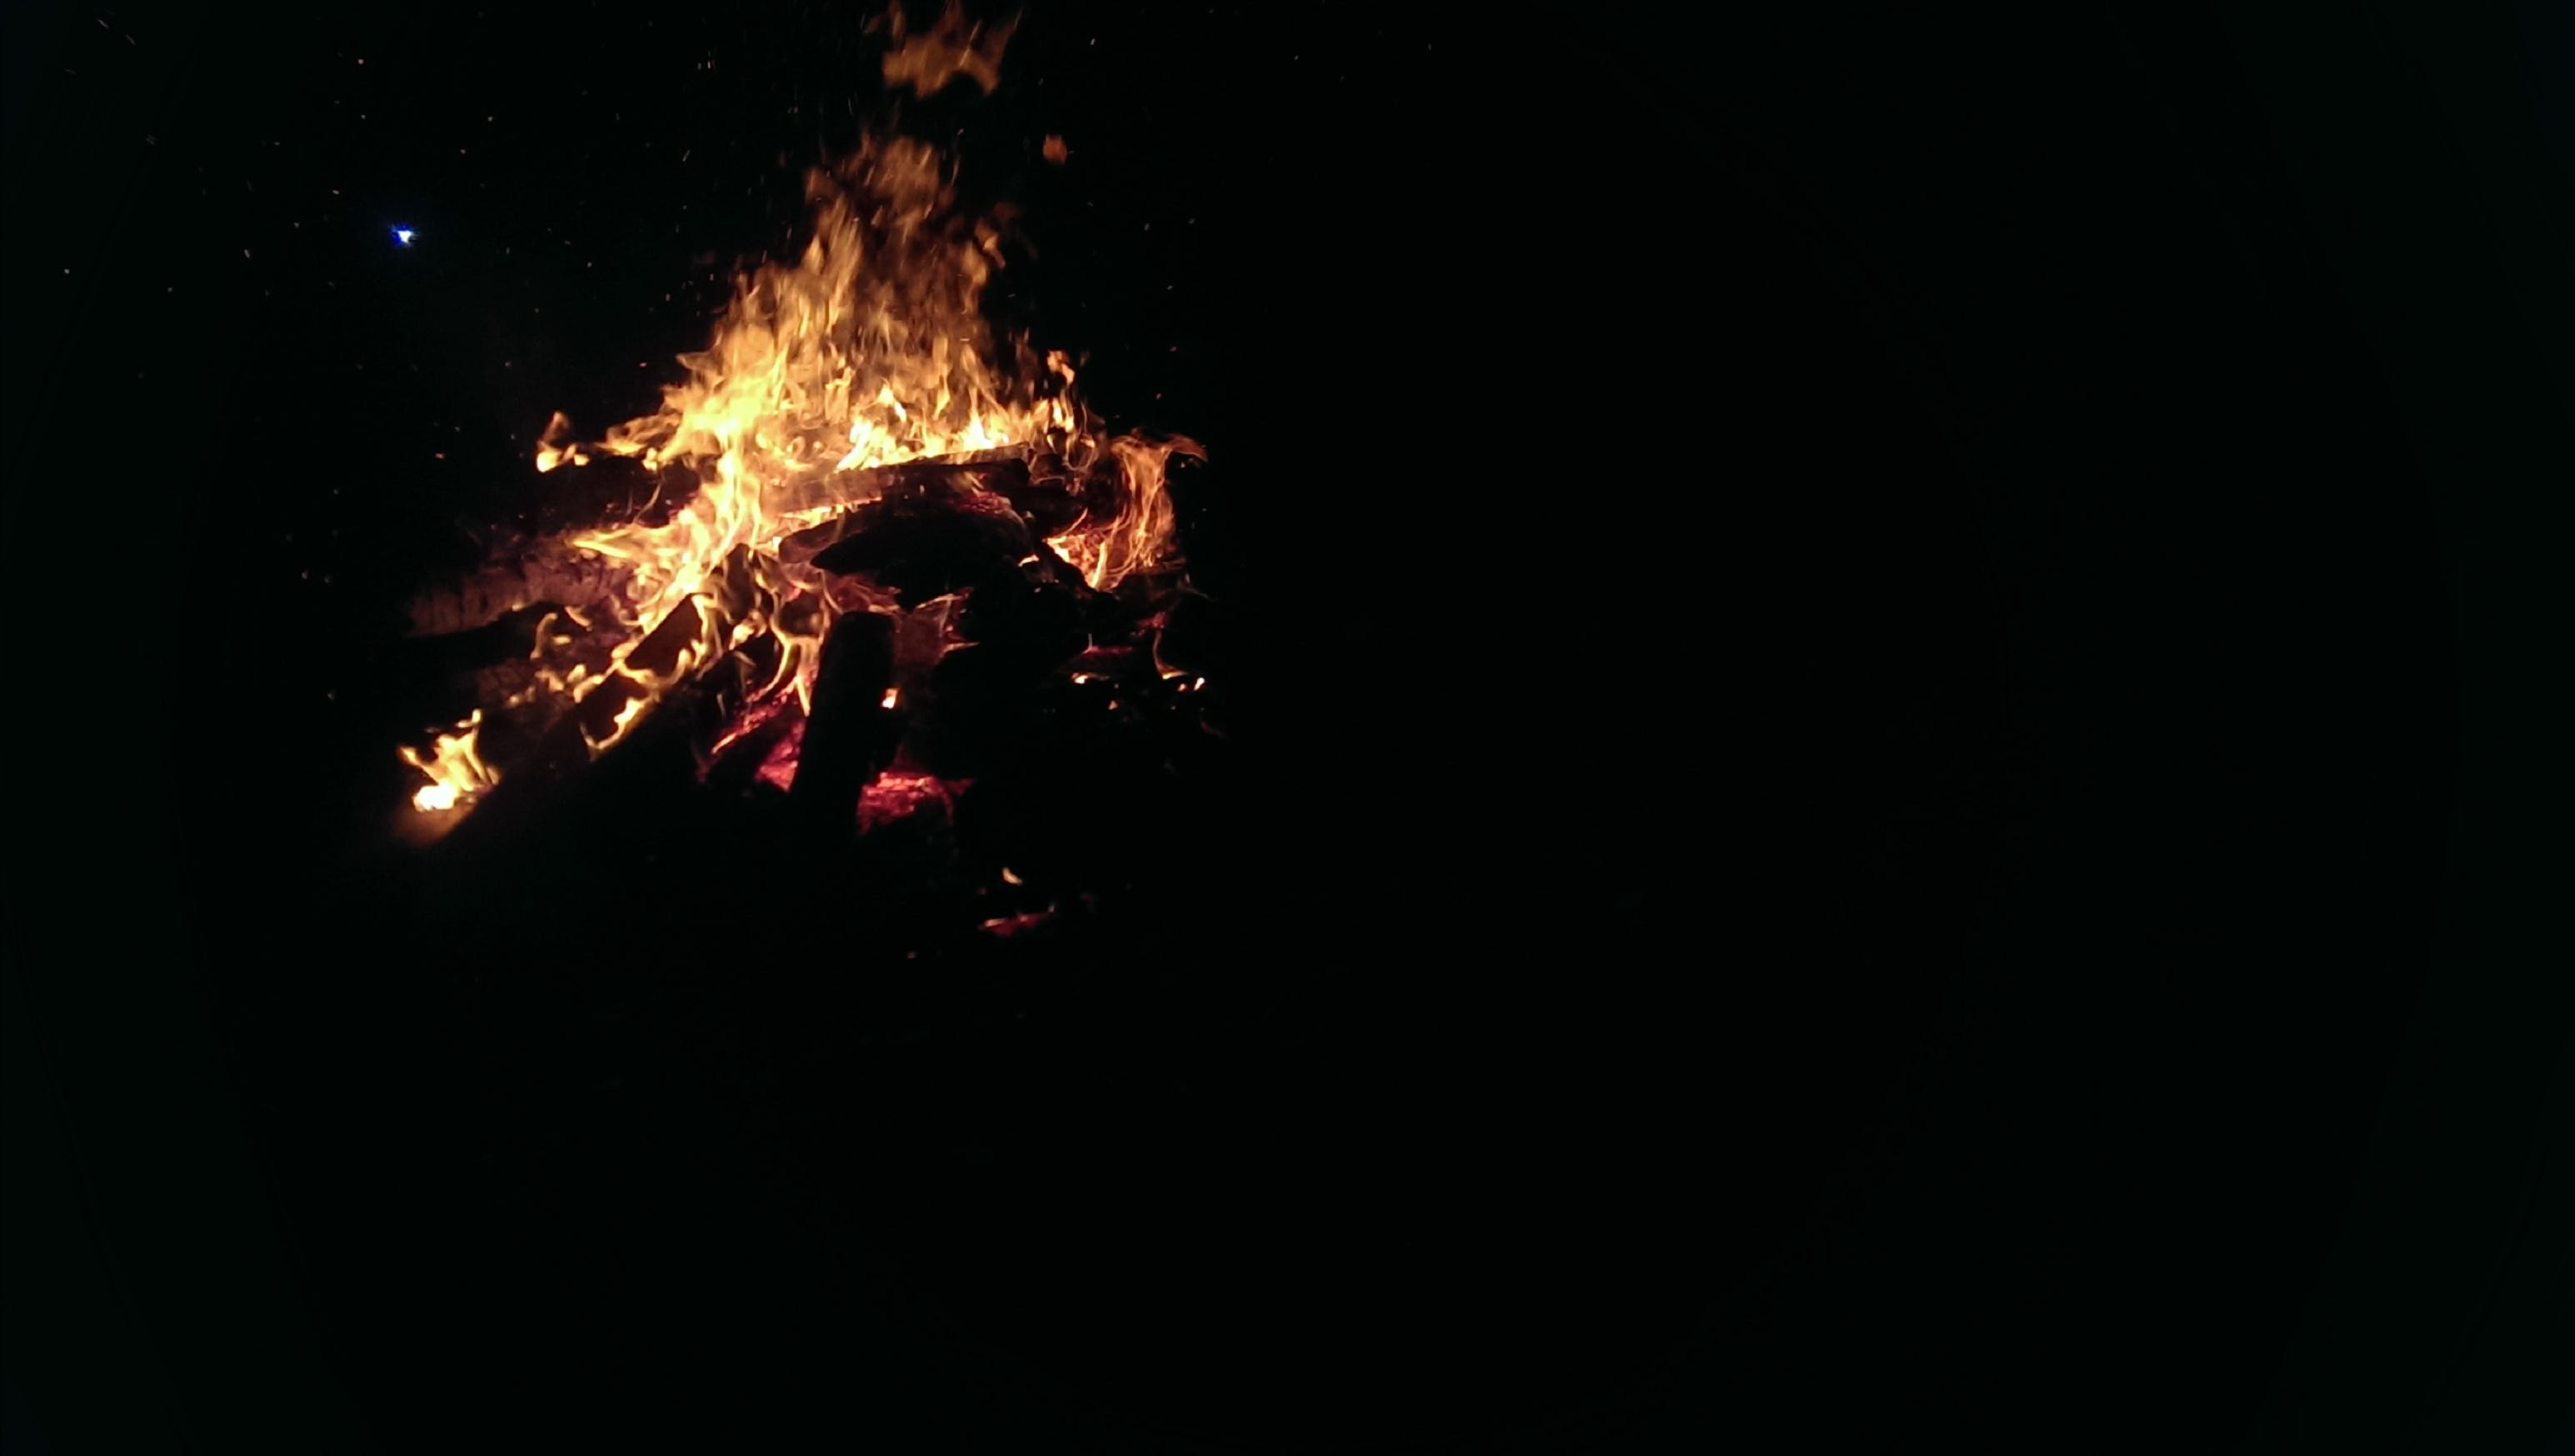 Free stock photo of fire, nature, night, night life